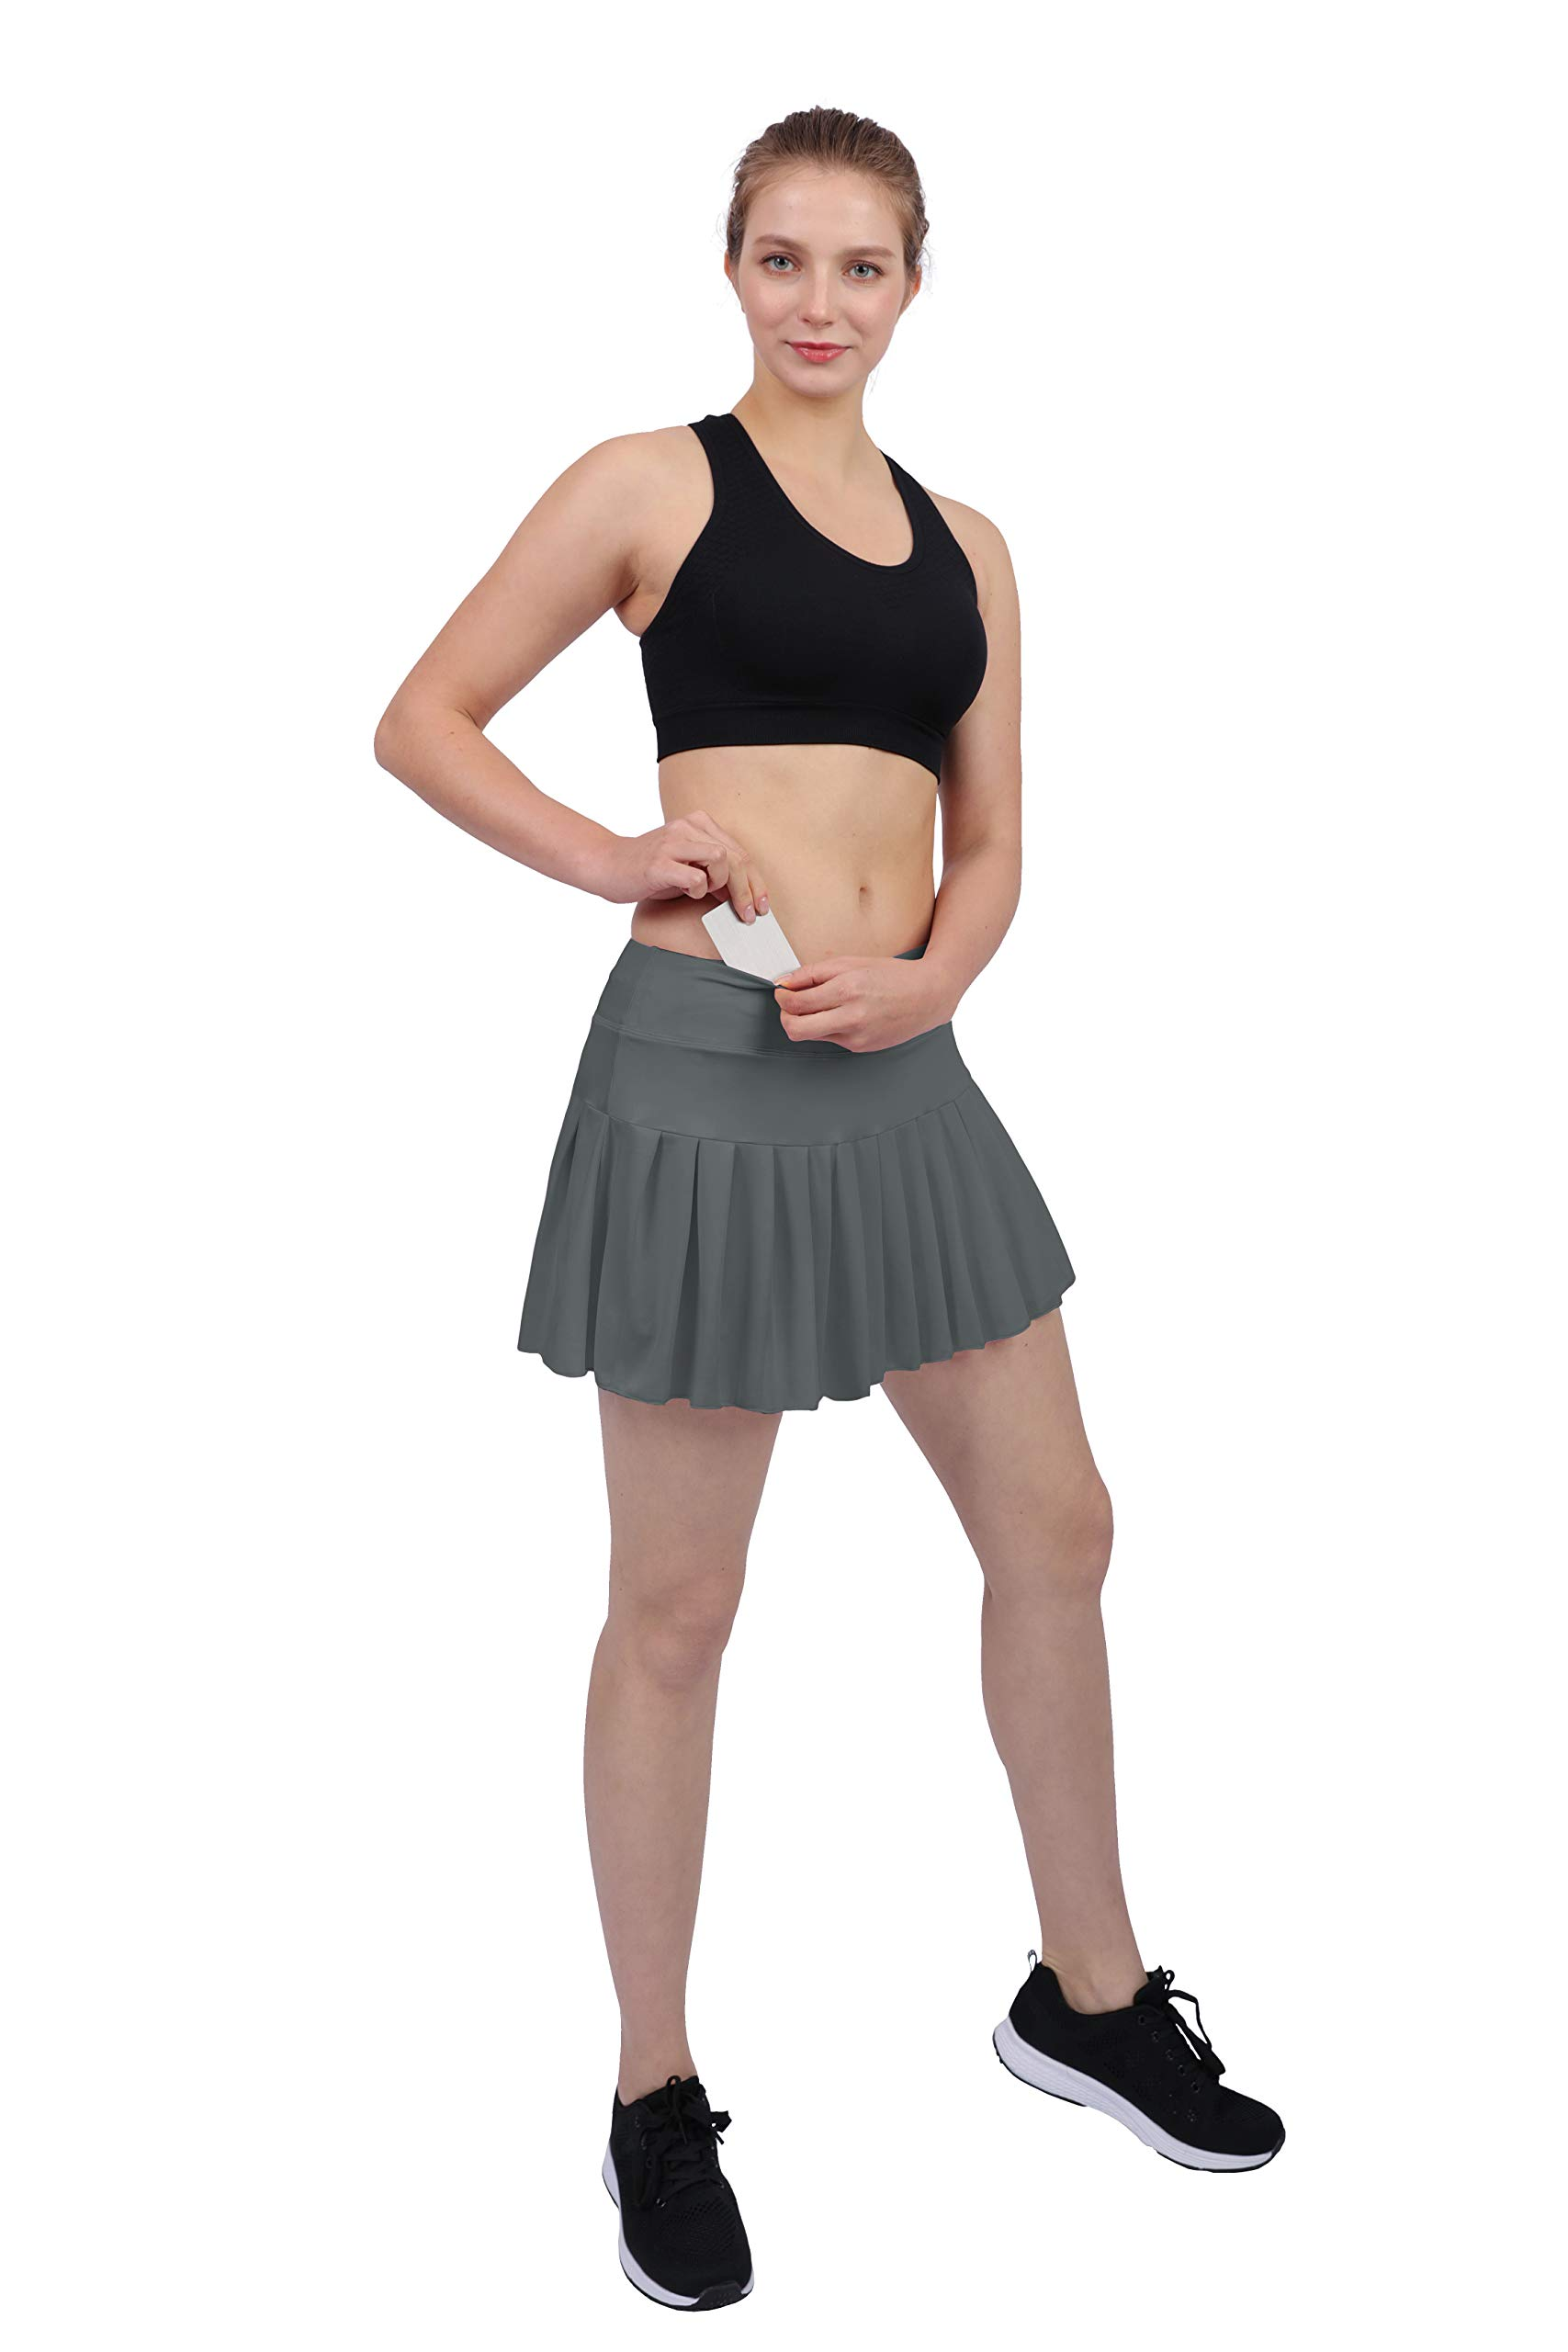 Womens Tennis Pleated Skorts Golf Workout High Waist Biult in Skirts Sports Active Wear with Pockets Grey by HonourSex